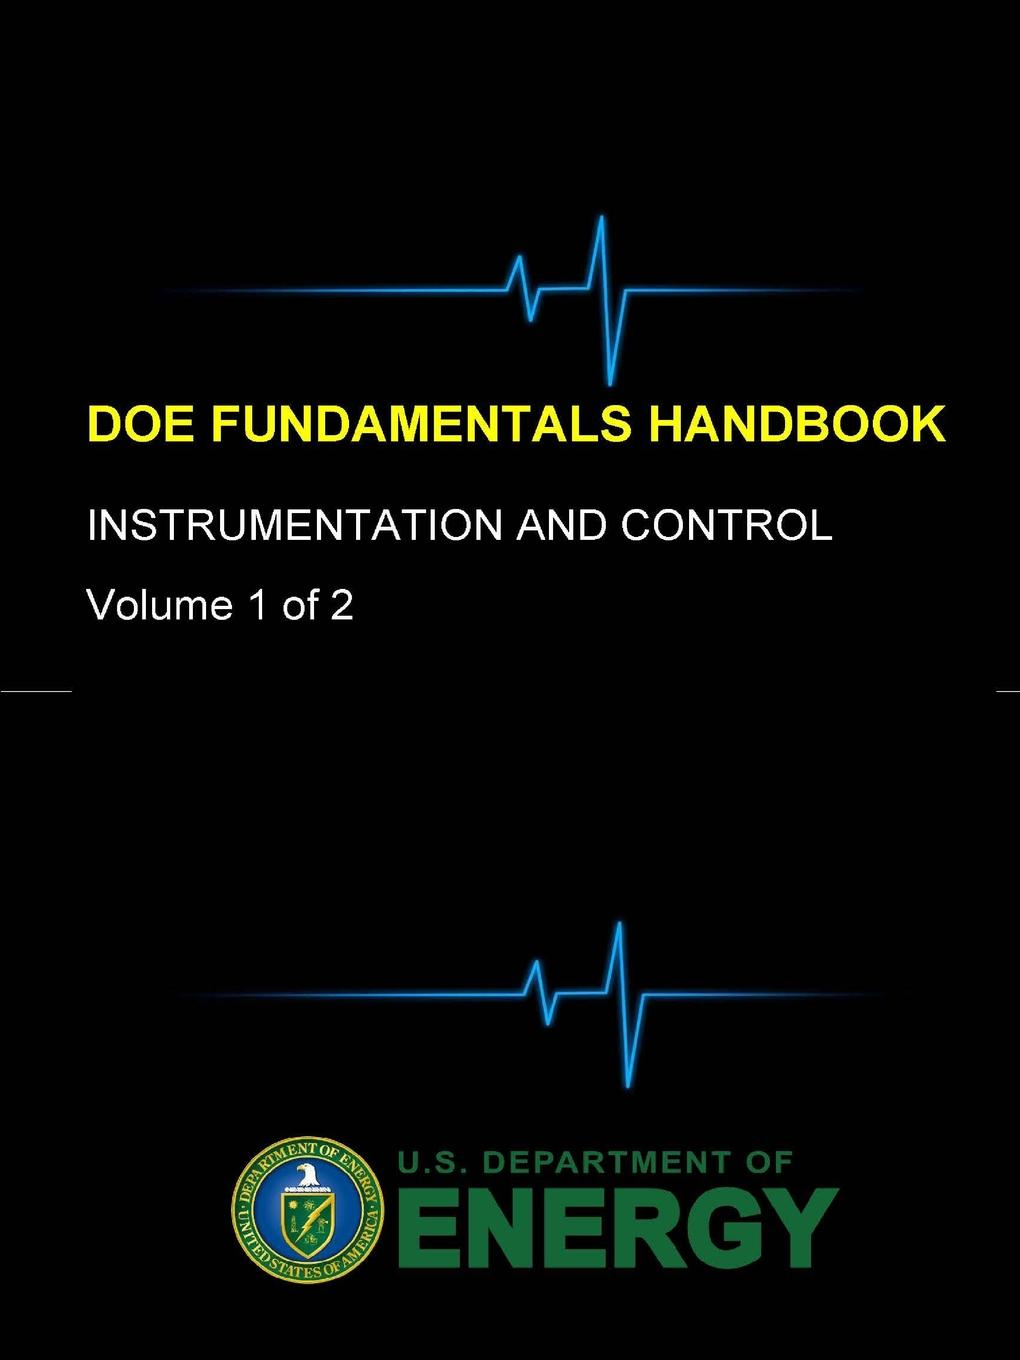 U.S. Department of Energy DOE Fundamentals Handbook - Instrumentation and Control (Volume 1 of 2)